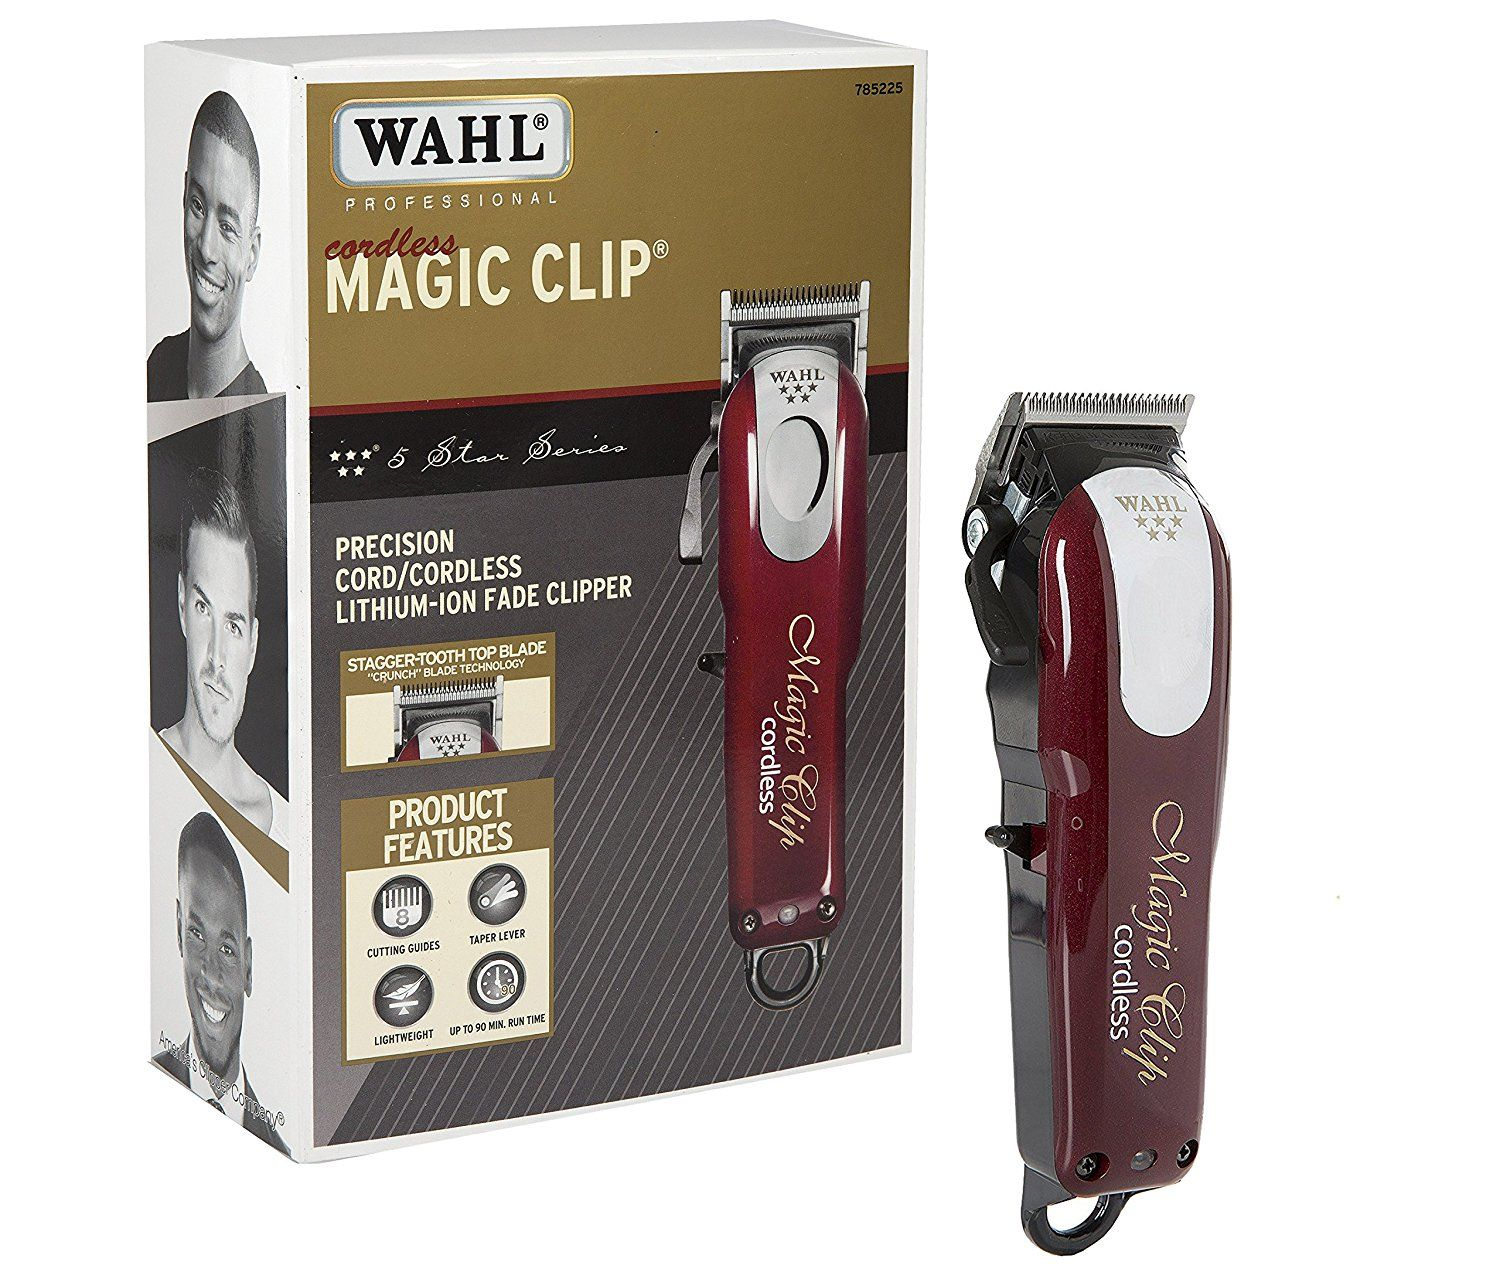 whal magic clippers home   professional use best hair clippers for smart  grooming check price on Amazon 6b919c514271